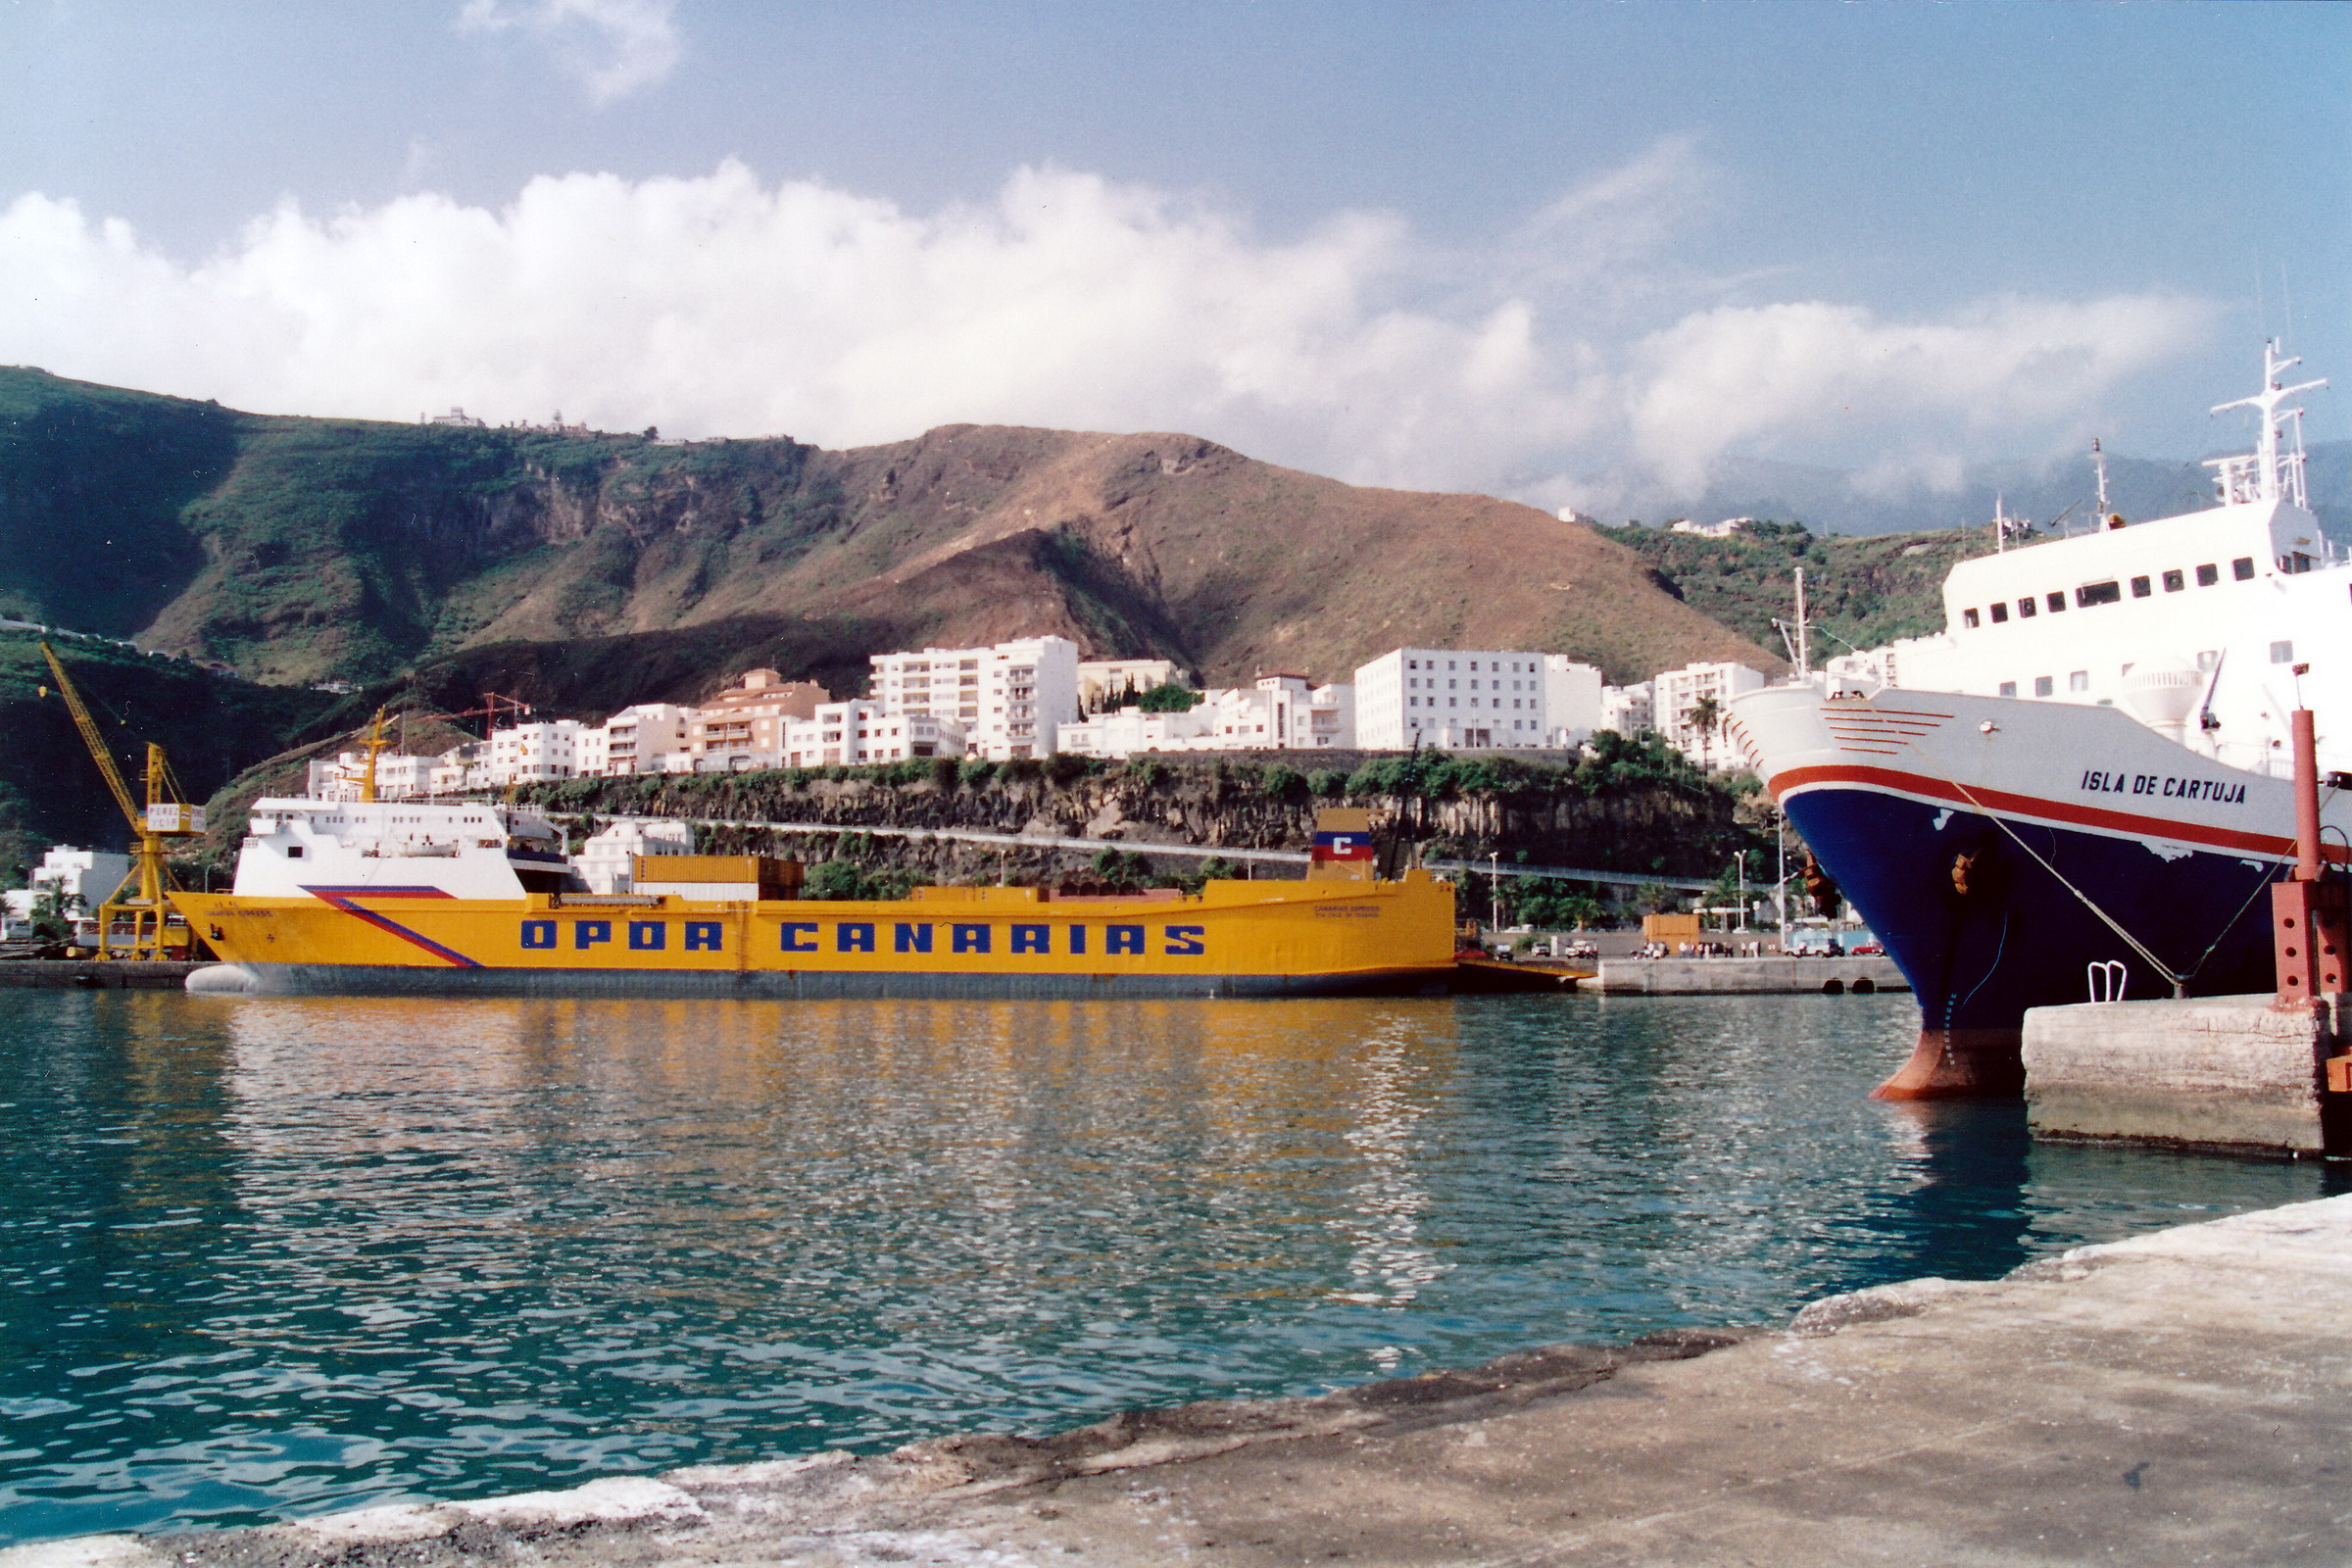 CANARIAS_EXPRESS_8207381_©Noray_(3)